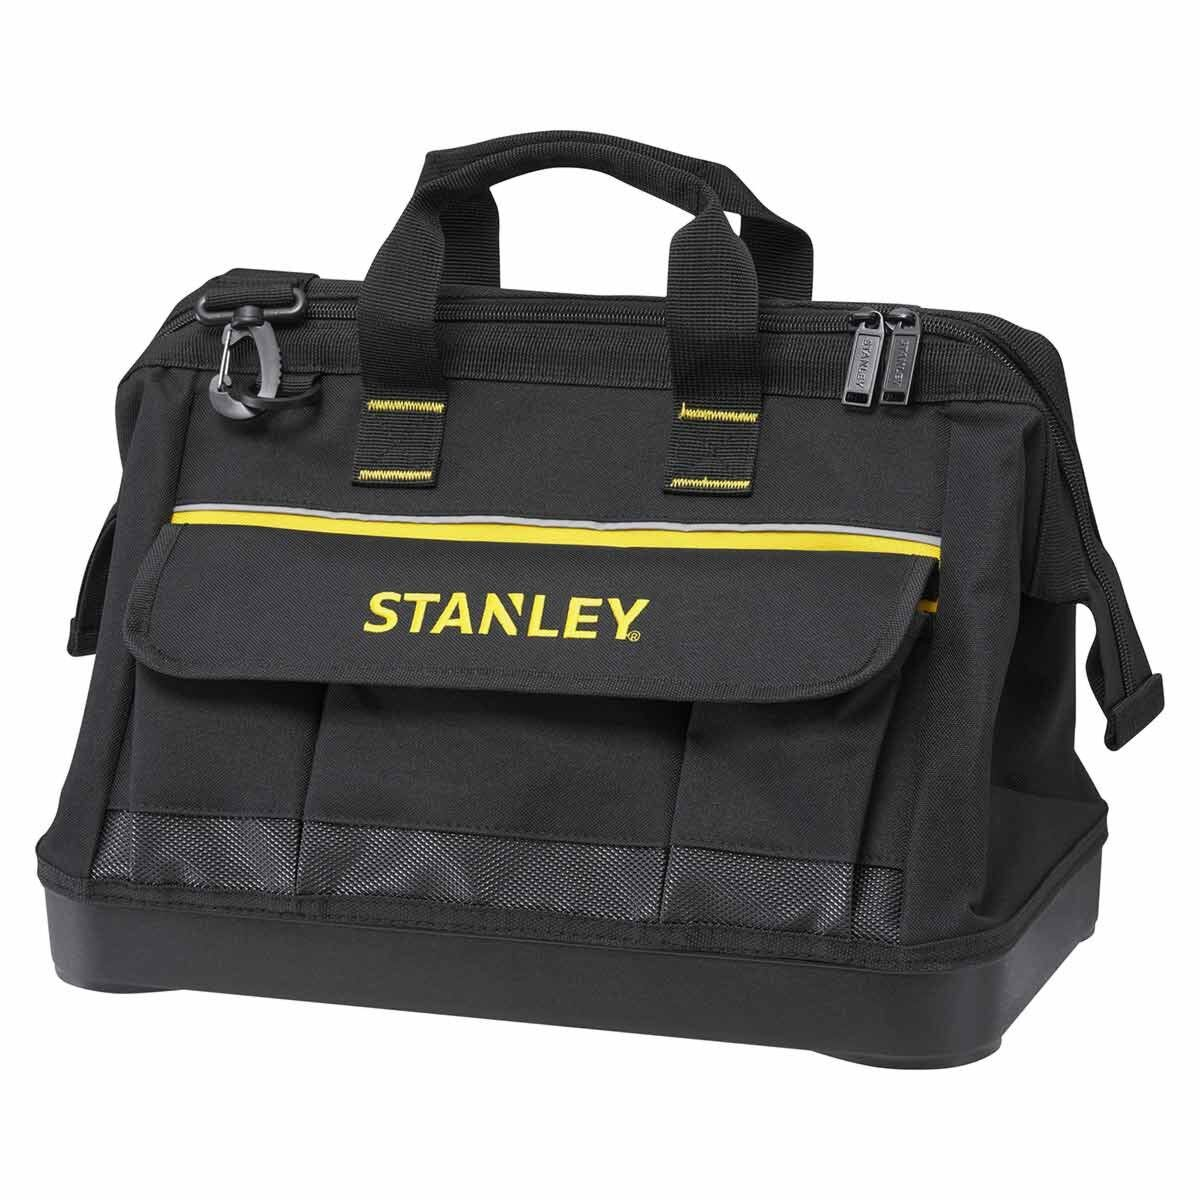 STANLEY 16 Inch Open Mouth Tool Bag